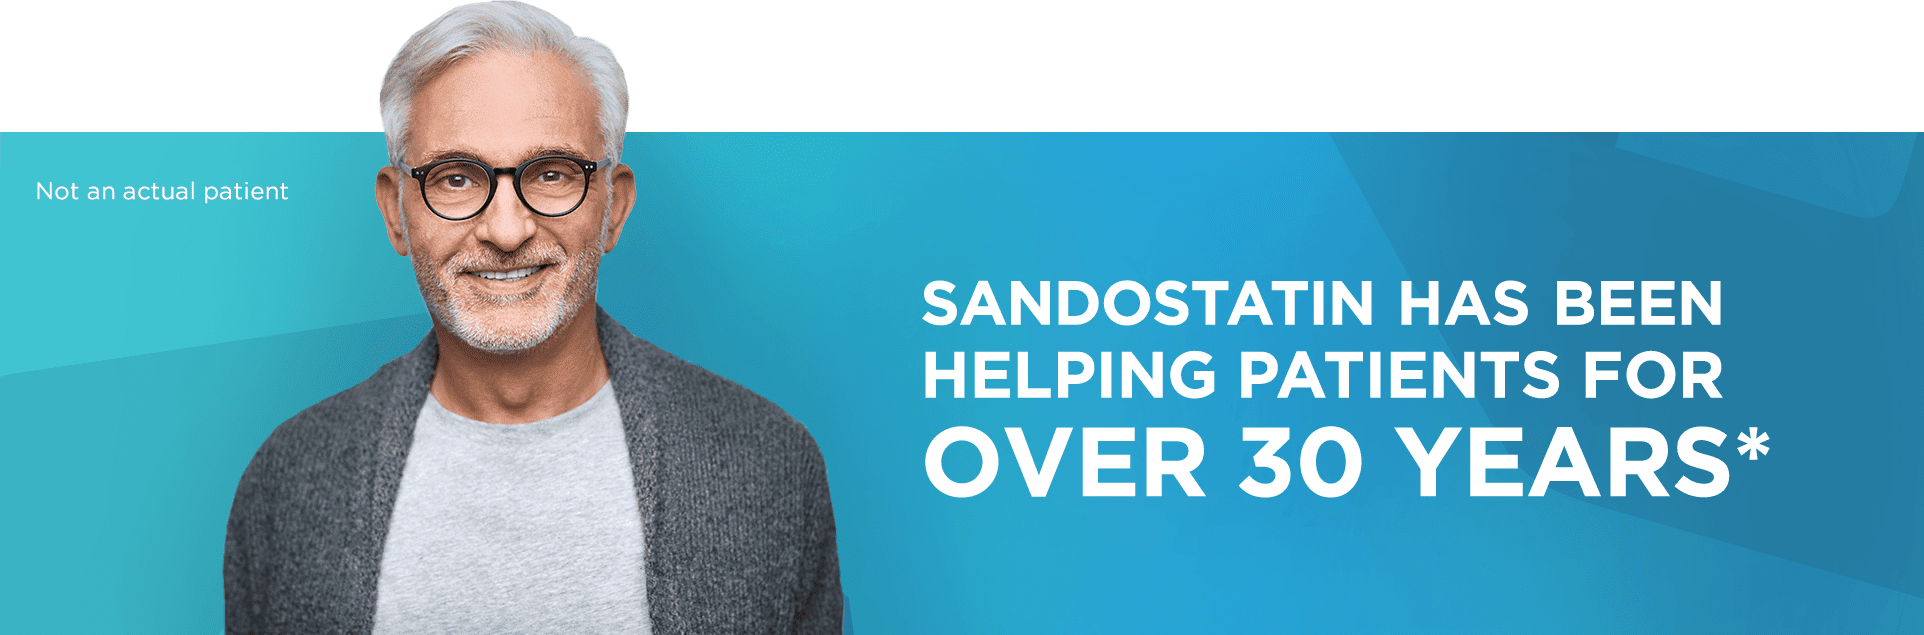 Sandostatin has been helping patients for over 30 years